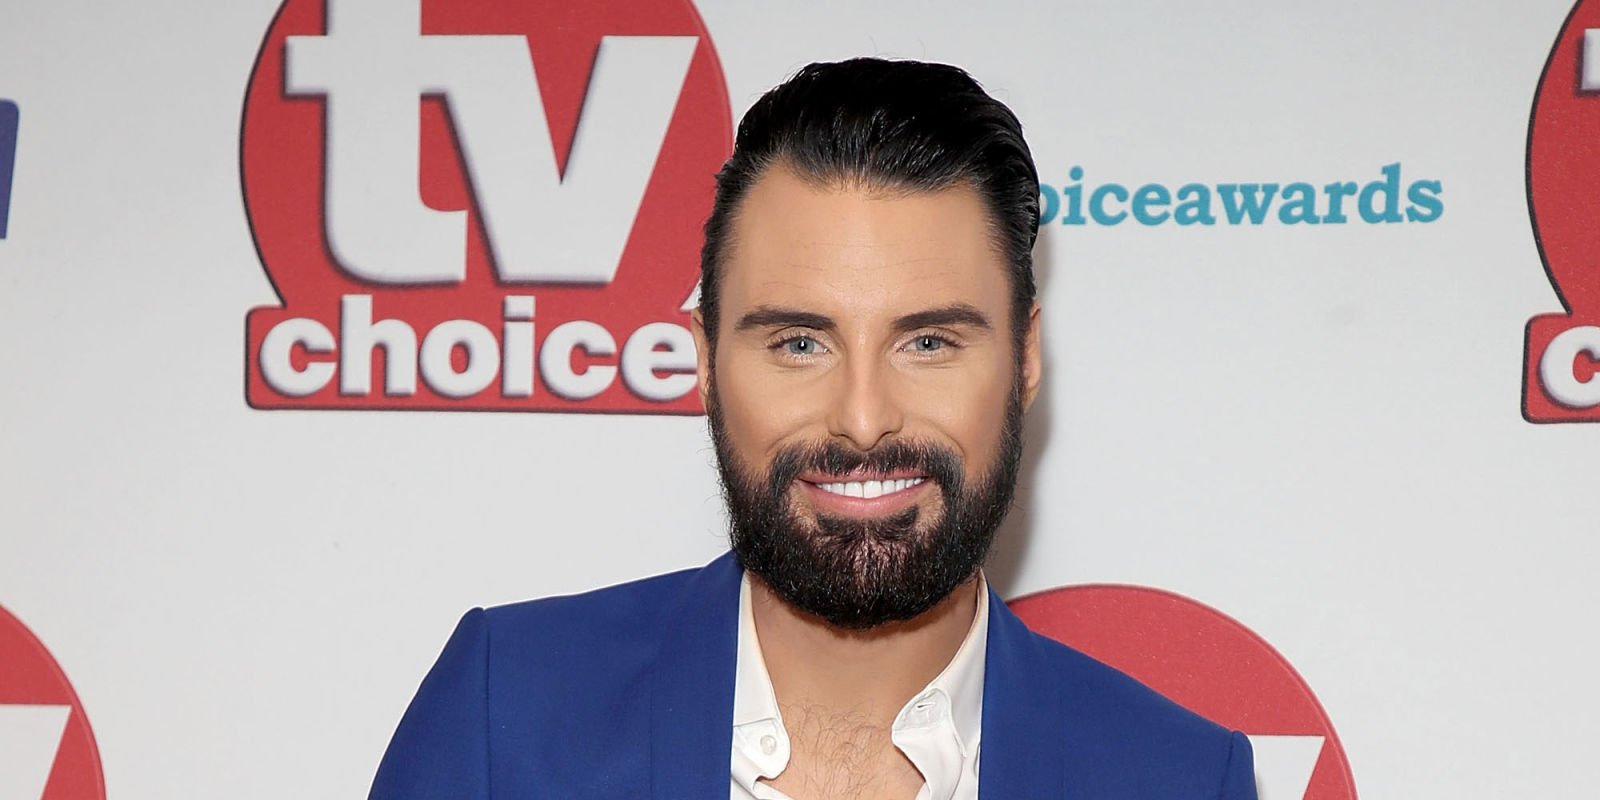 This Morning's Rylan Clark-Neal shares homophobic experience while covering Eurovision 2018